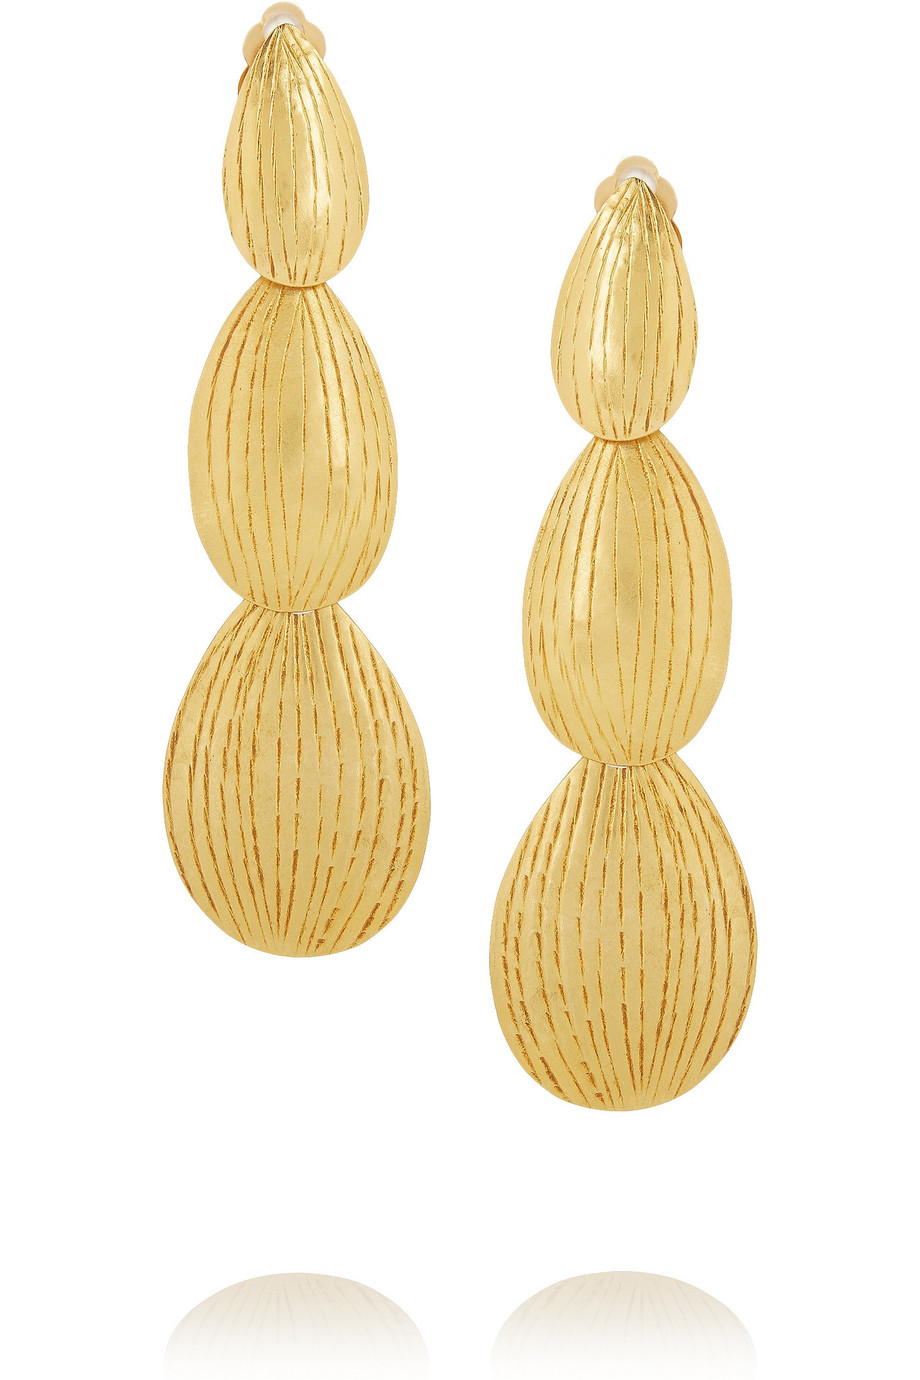 Hervé Van der Straeten Gold Pleated Drop Earrings